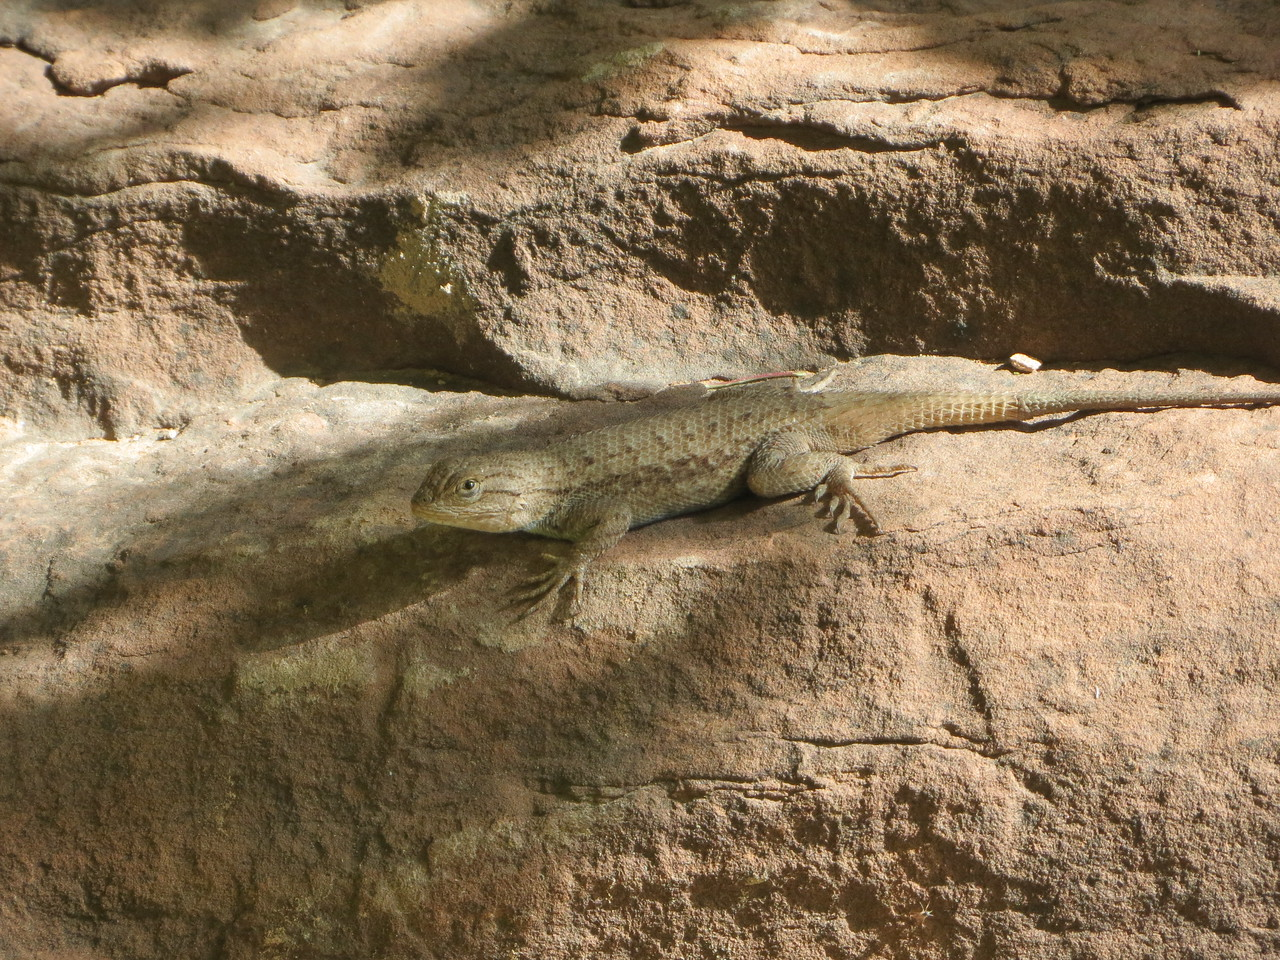 Day 5 (896 miles):  CO 141 / The Unaweep-Tabeguache Byway.  I stopped at a natural spring and shared a rock with this little dude.